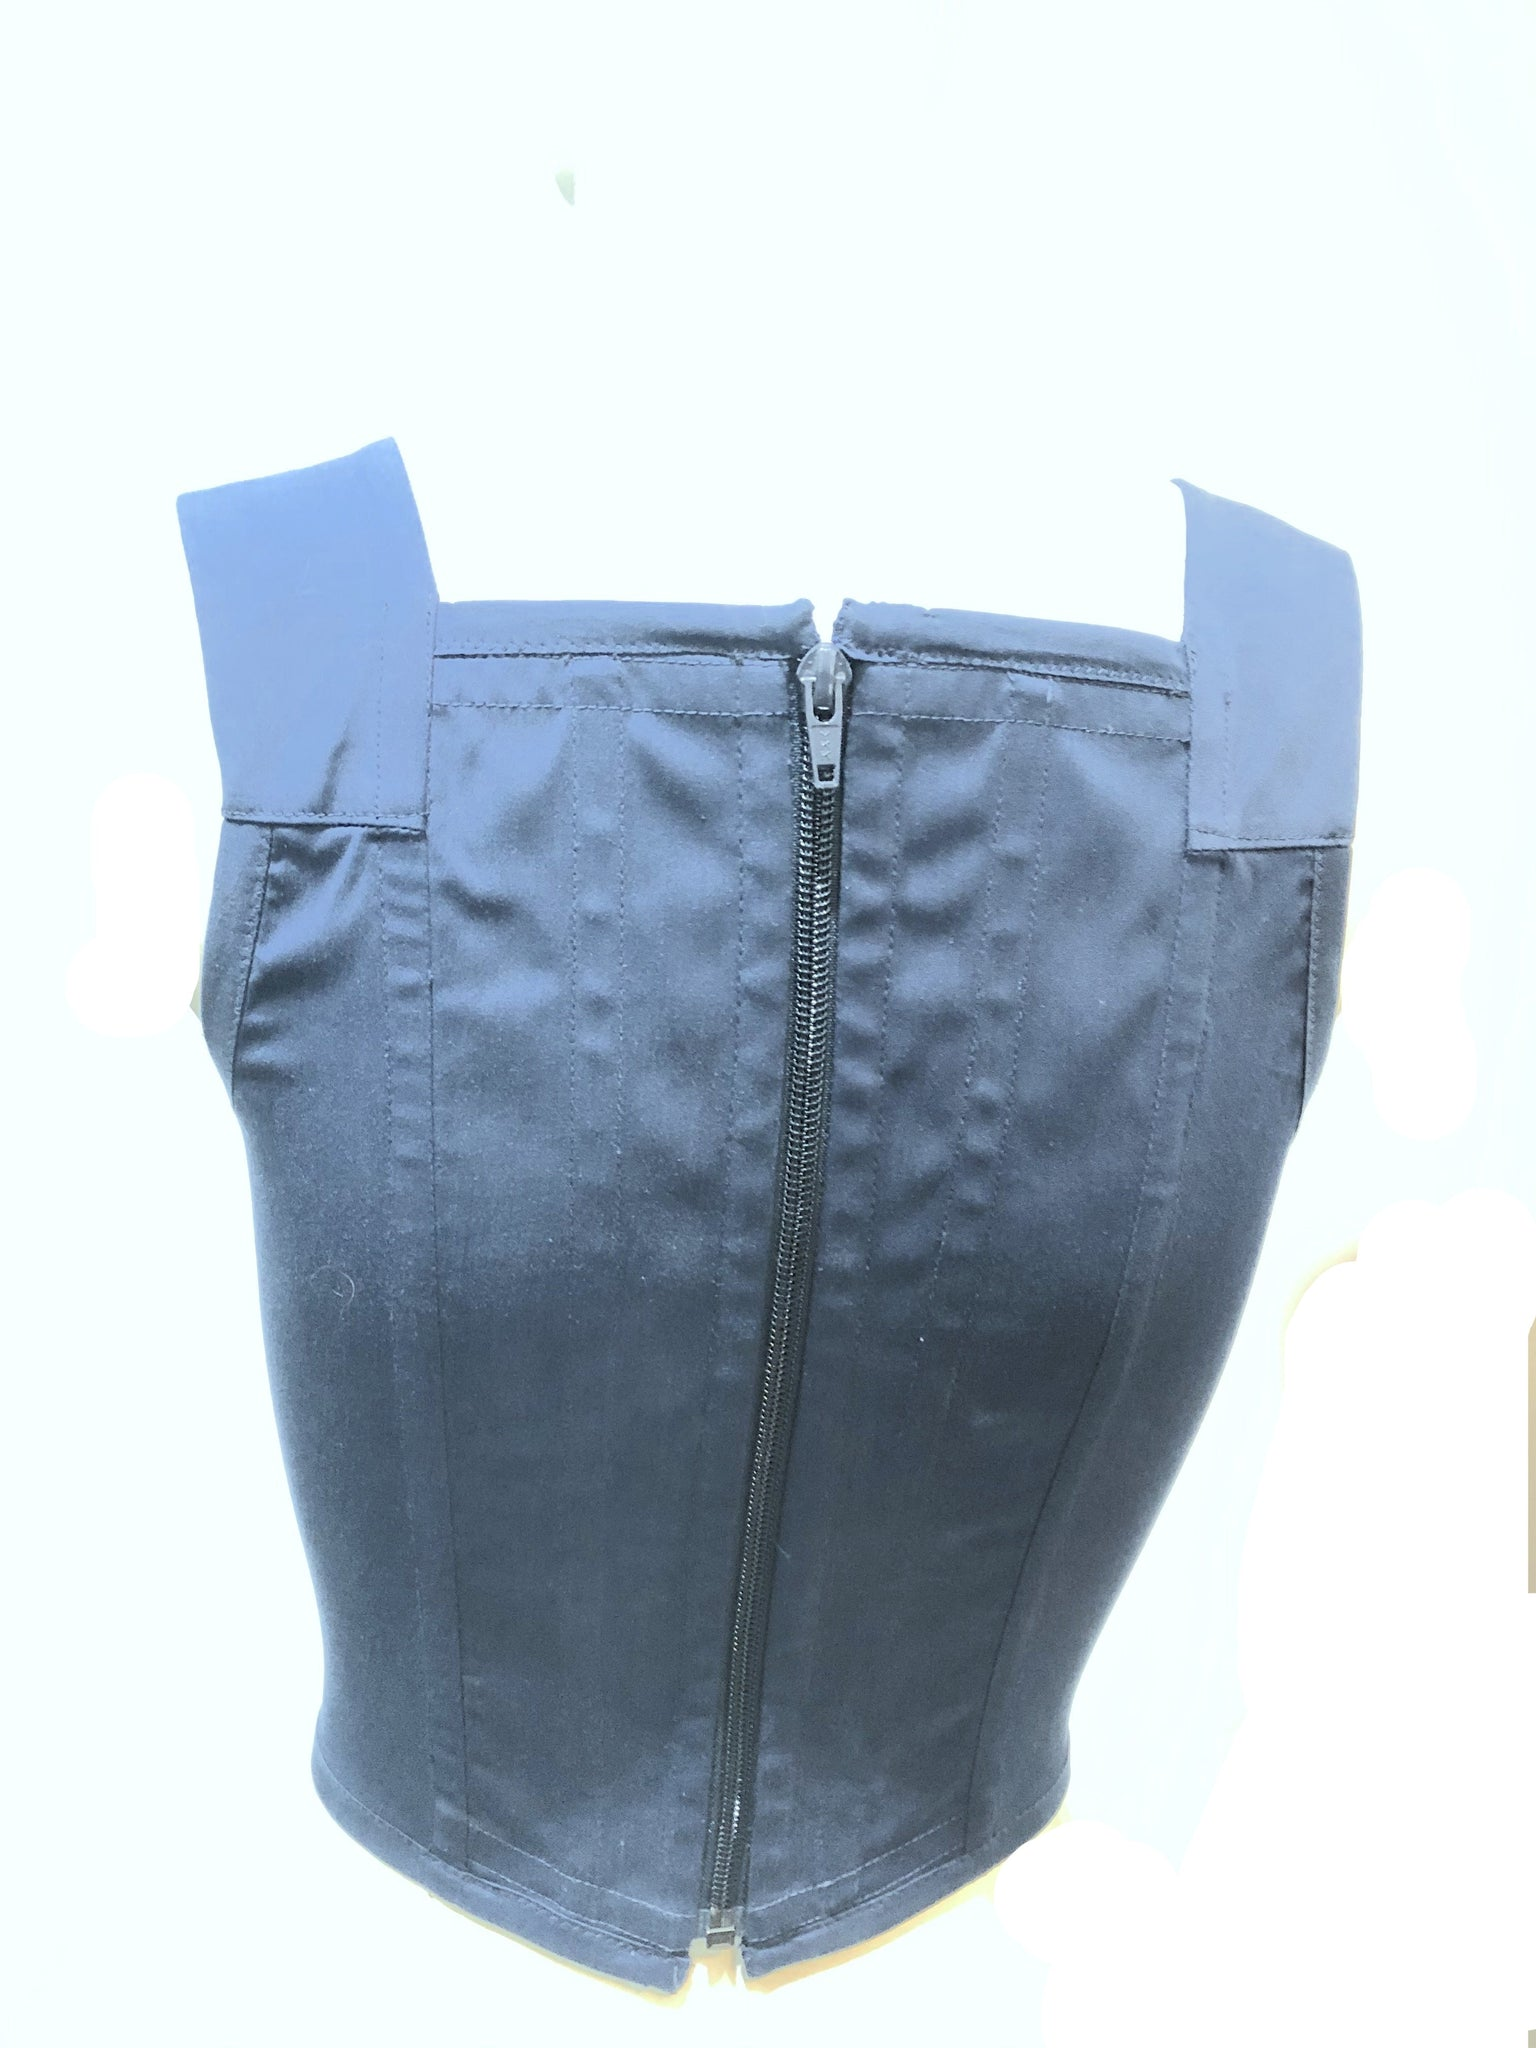 Vivienne Westwood Blue Corset Top with Logo BACK 2 0F 4